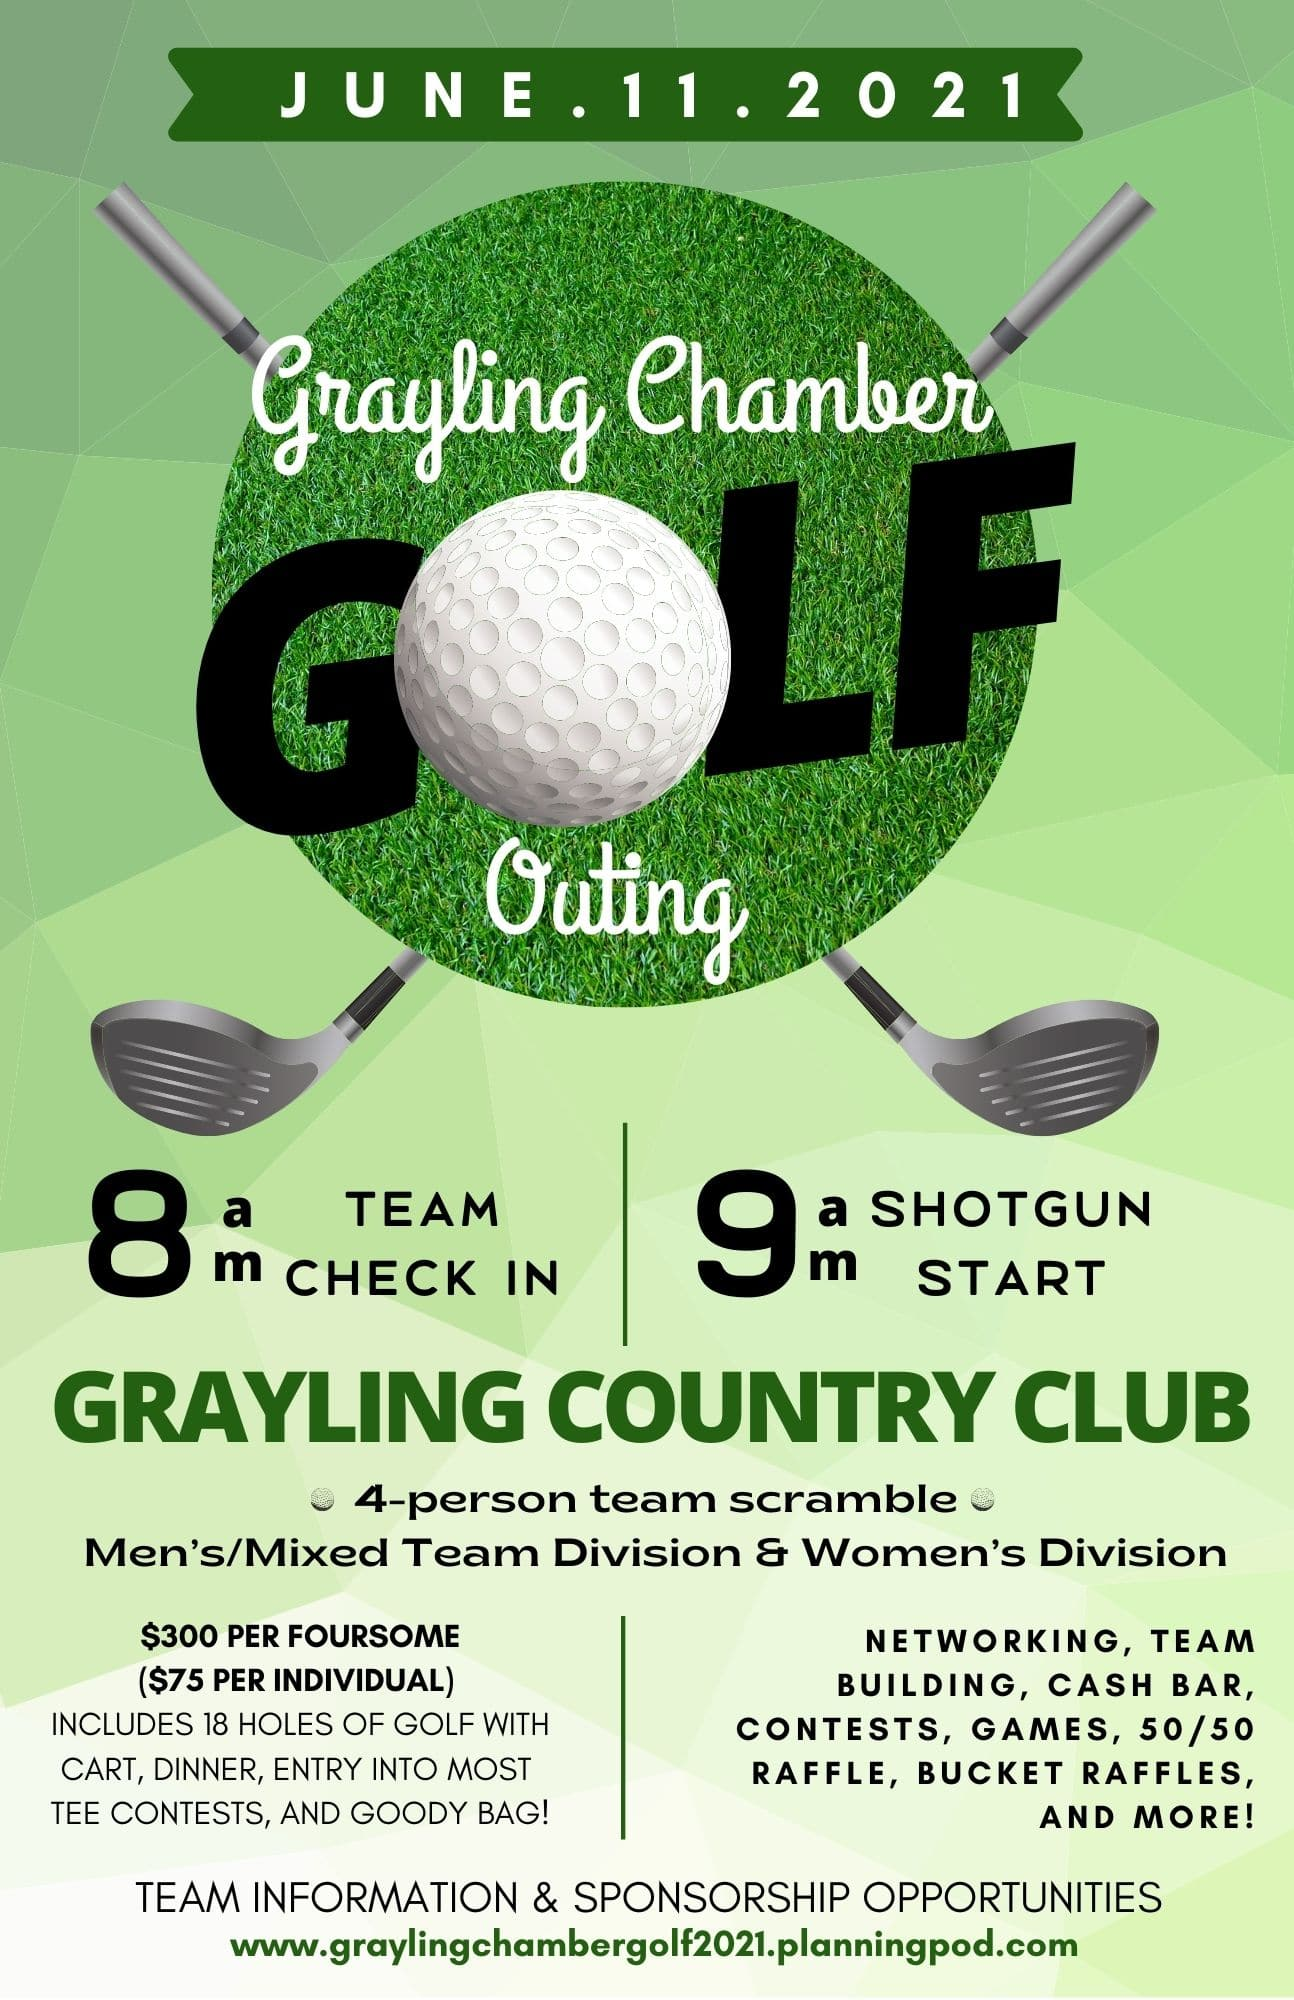 WE CAN'T WAIT TO SEE YOU ON THE COURSE!